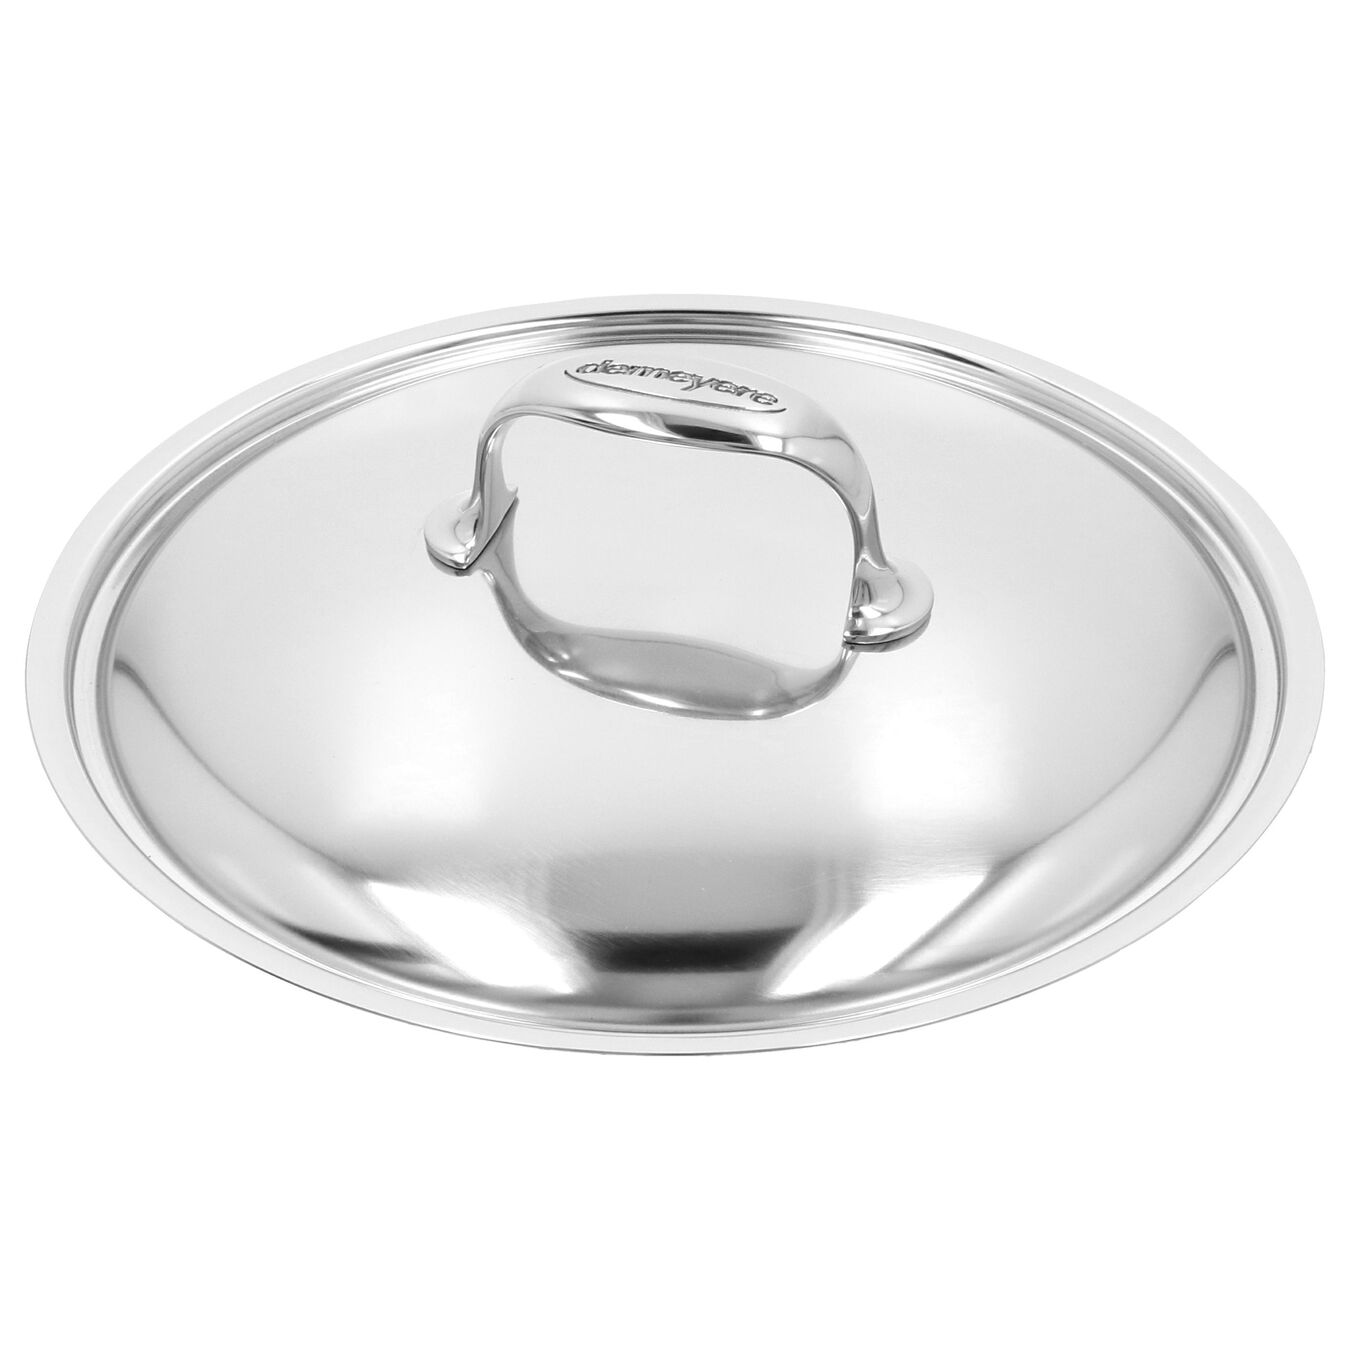 9.5-inch Sauté Pan with Helper Handle and Lid, 18/10 Stainless Steel ,,large 5